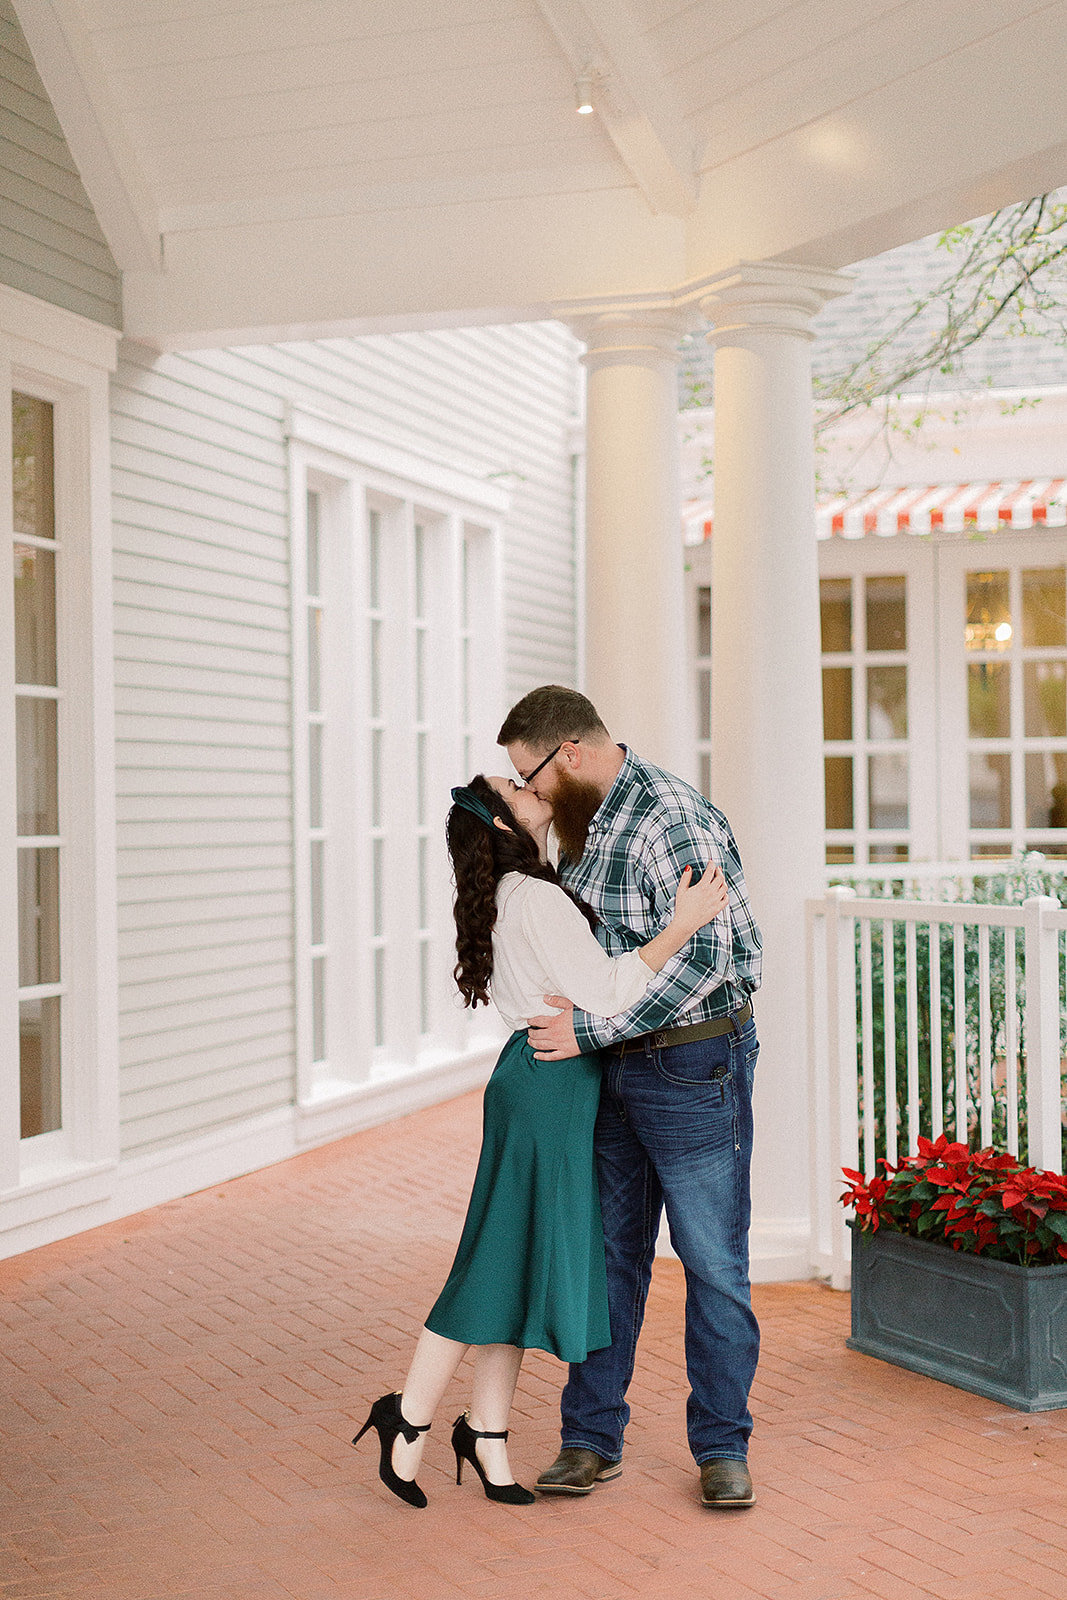 Cassidy_+_Kylor_Proposal_at_Disney_s_Beach_Club_Resort_Photographer_Casie_Marie_Photography-67